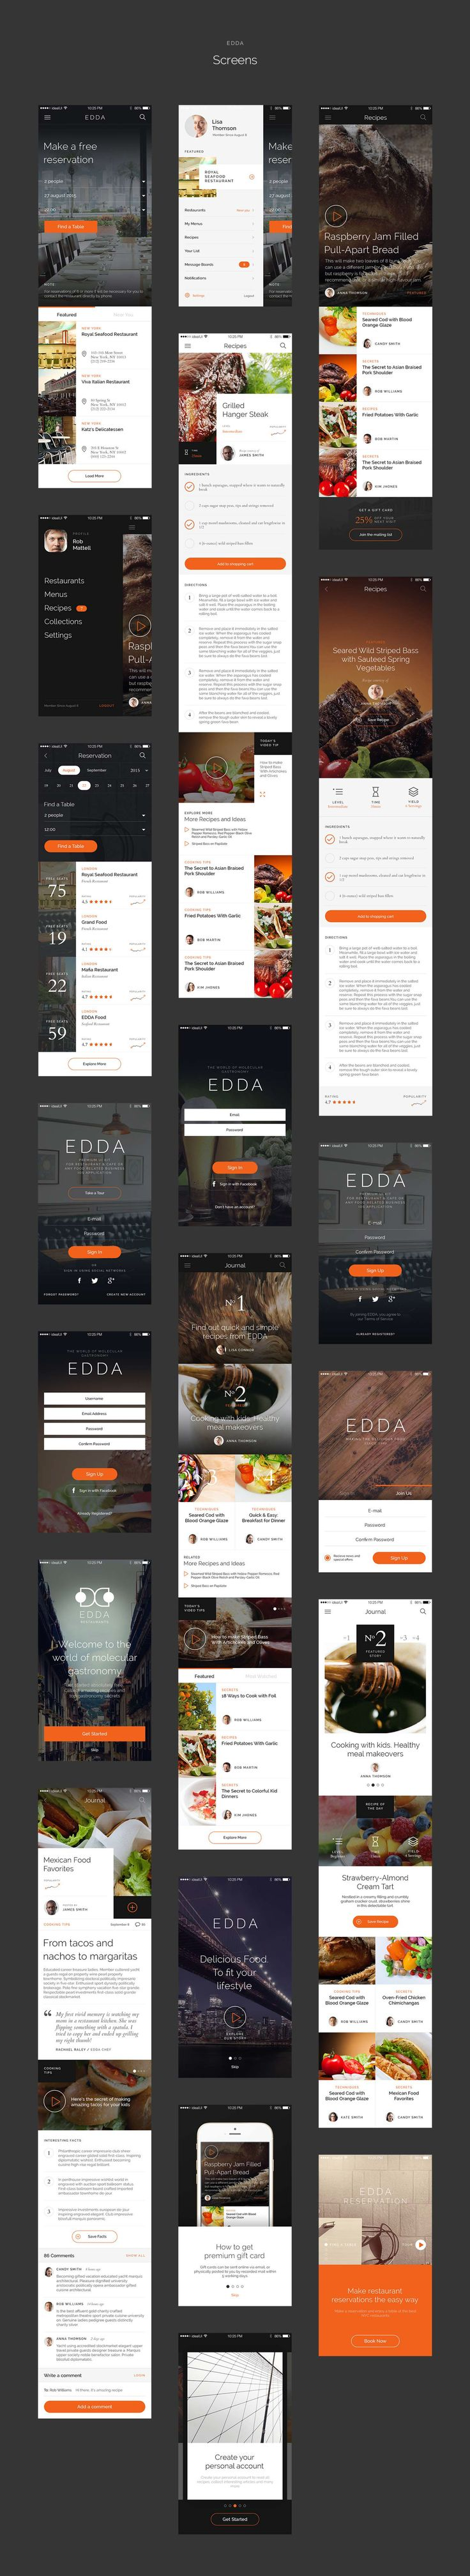 EDDA-—-is-Premium-UI-kit-for-Restaurant-Cafe-or-any-food-related-business-iOS-application-With-wallpaper-wp3605312